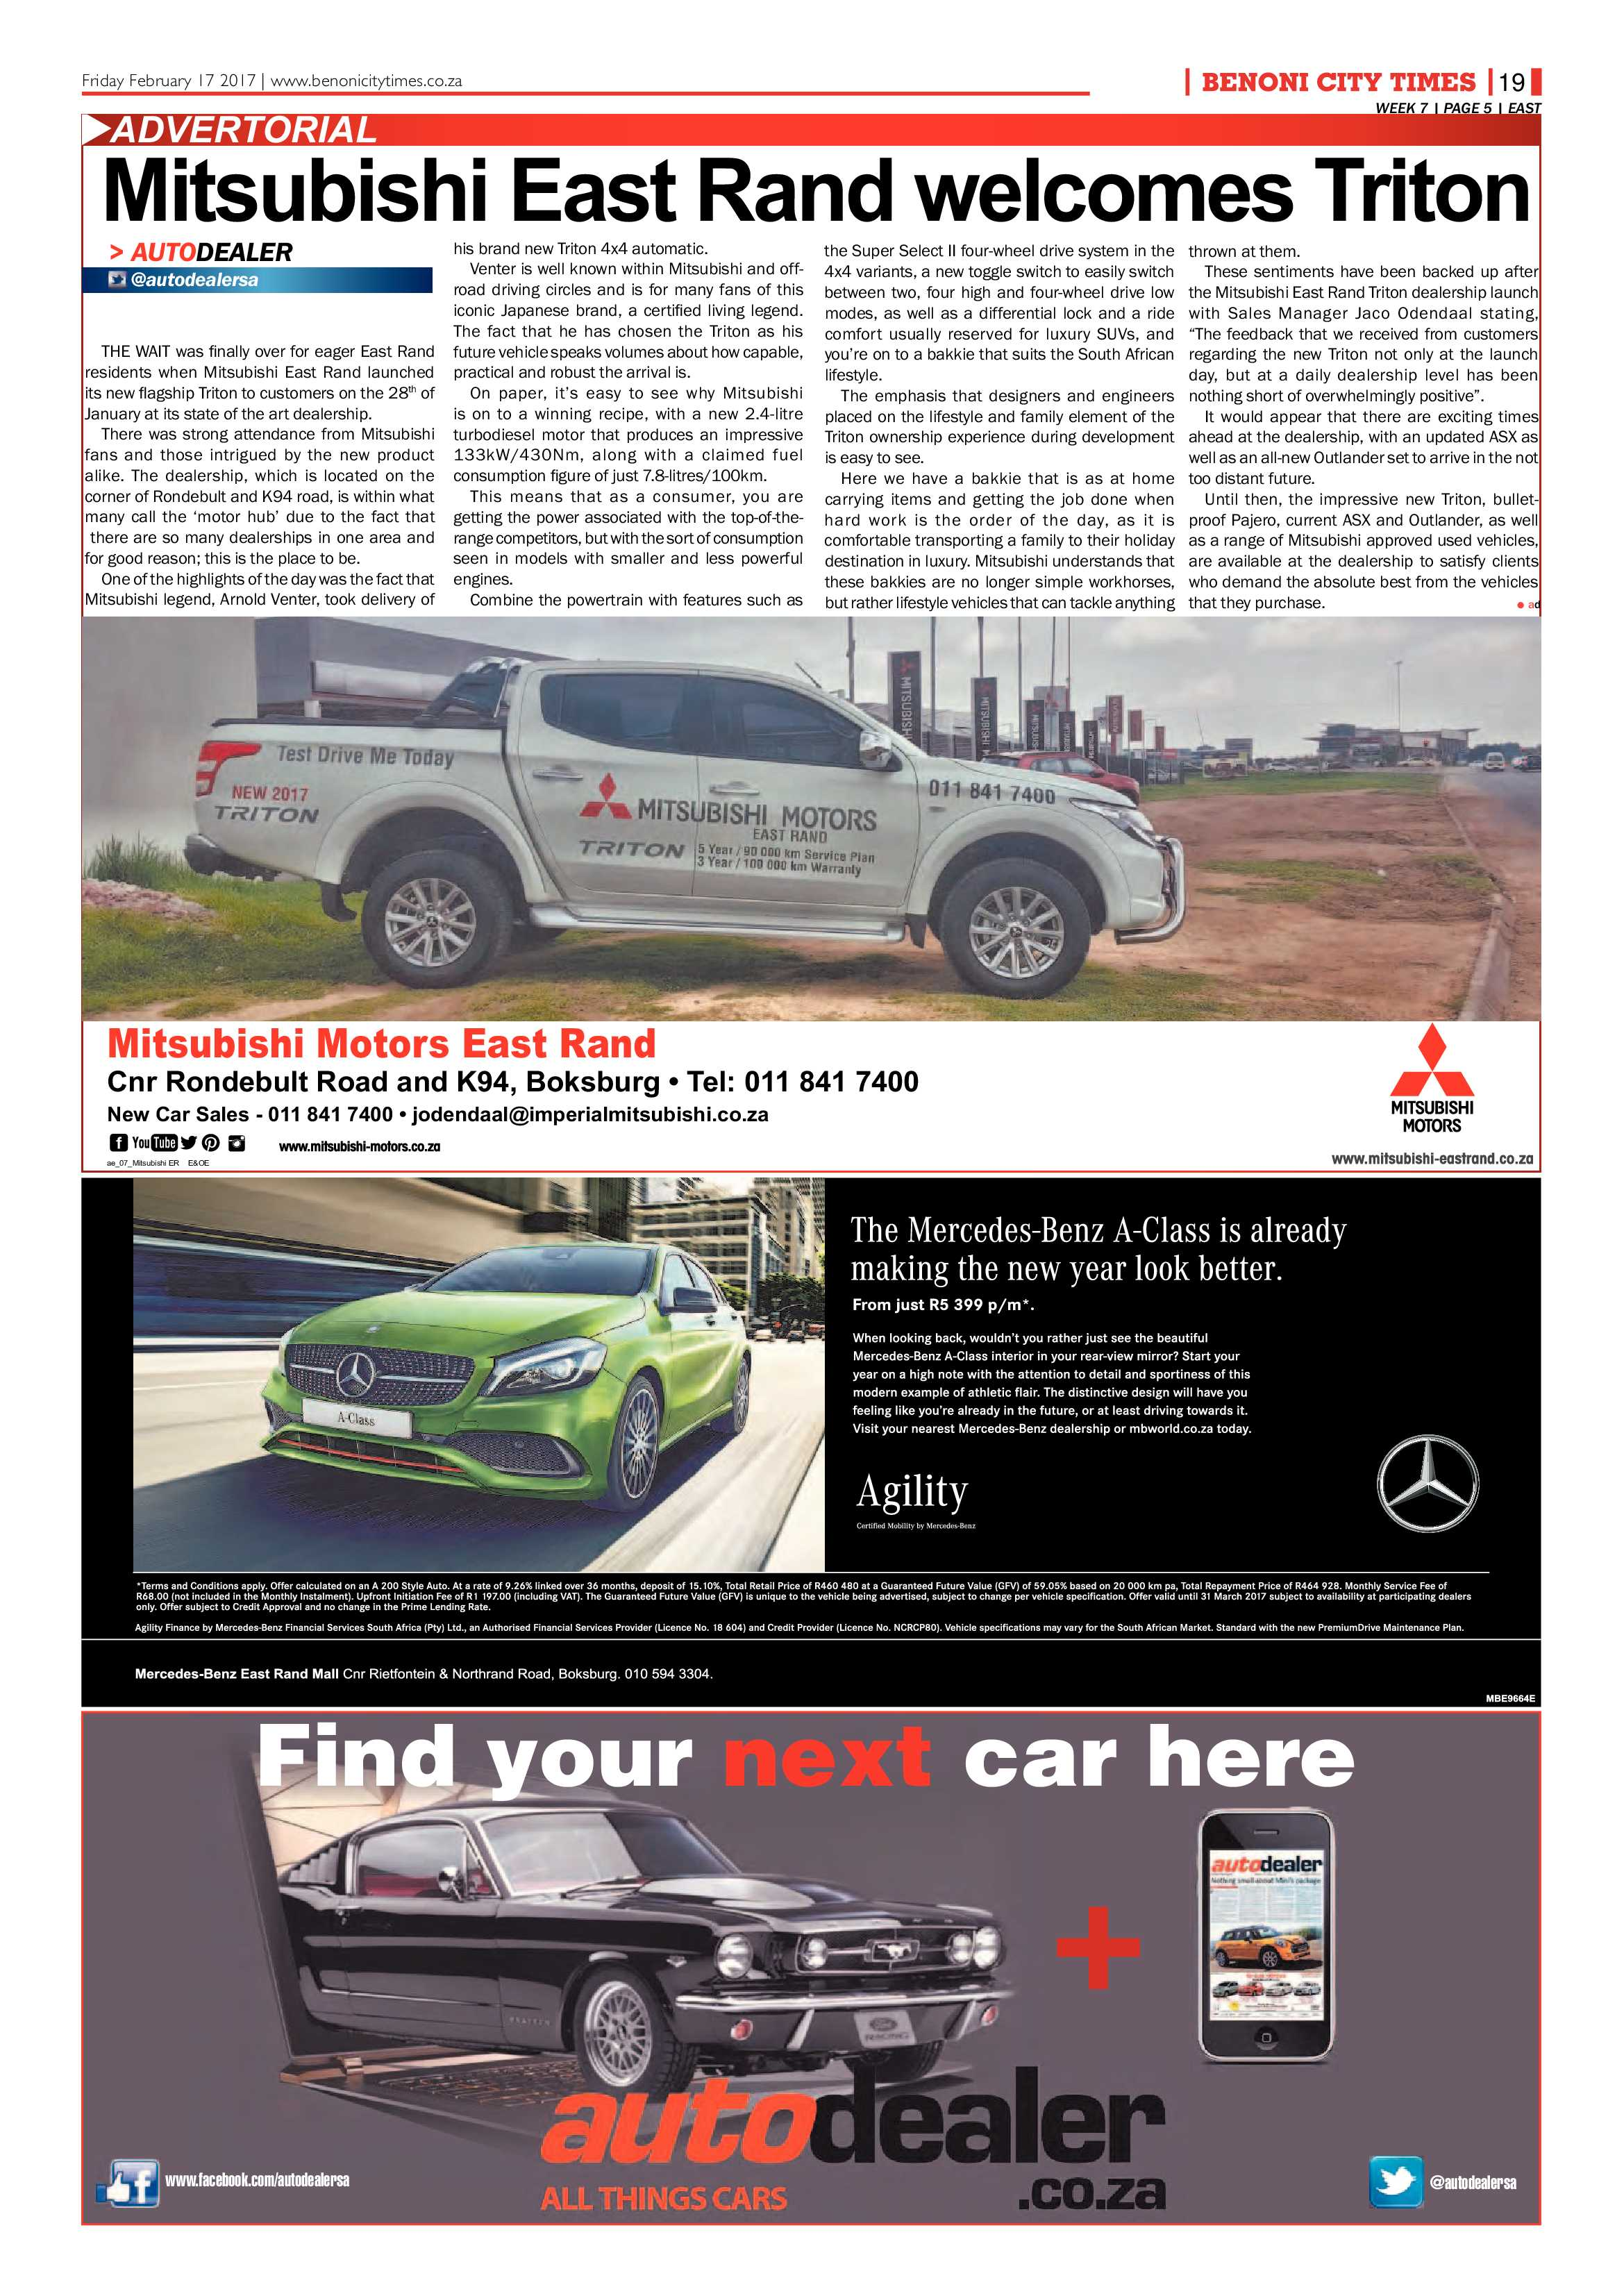 benoni-city-times-16-february-2017-epapers-page-19